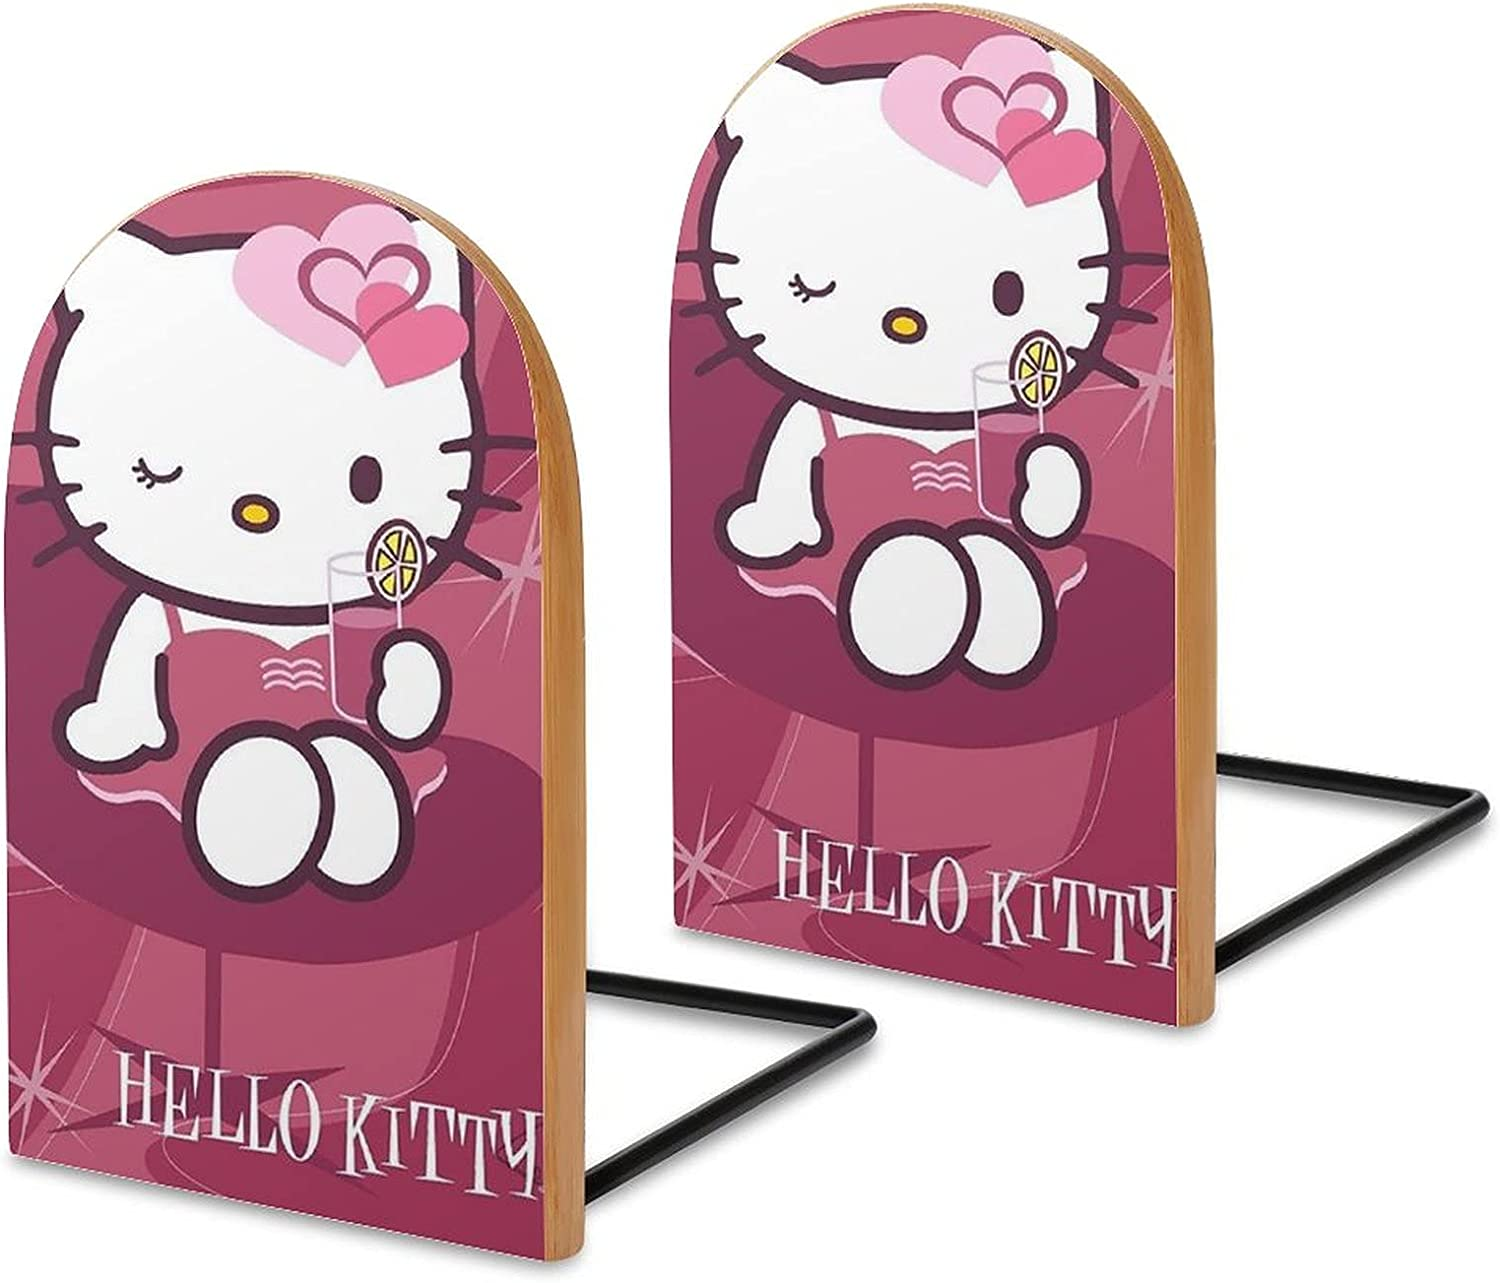 KRISMARIO Hellokitty 2pcs Heavy Wood Logs Bookends Modern for Ad